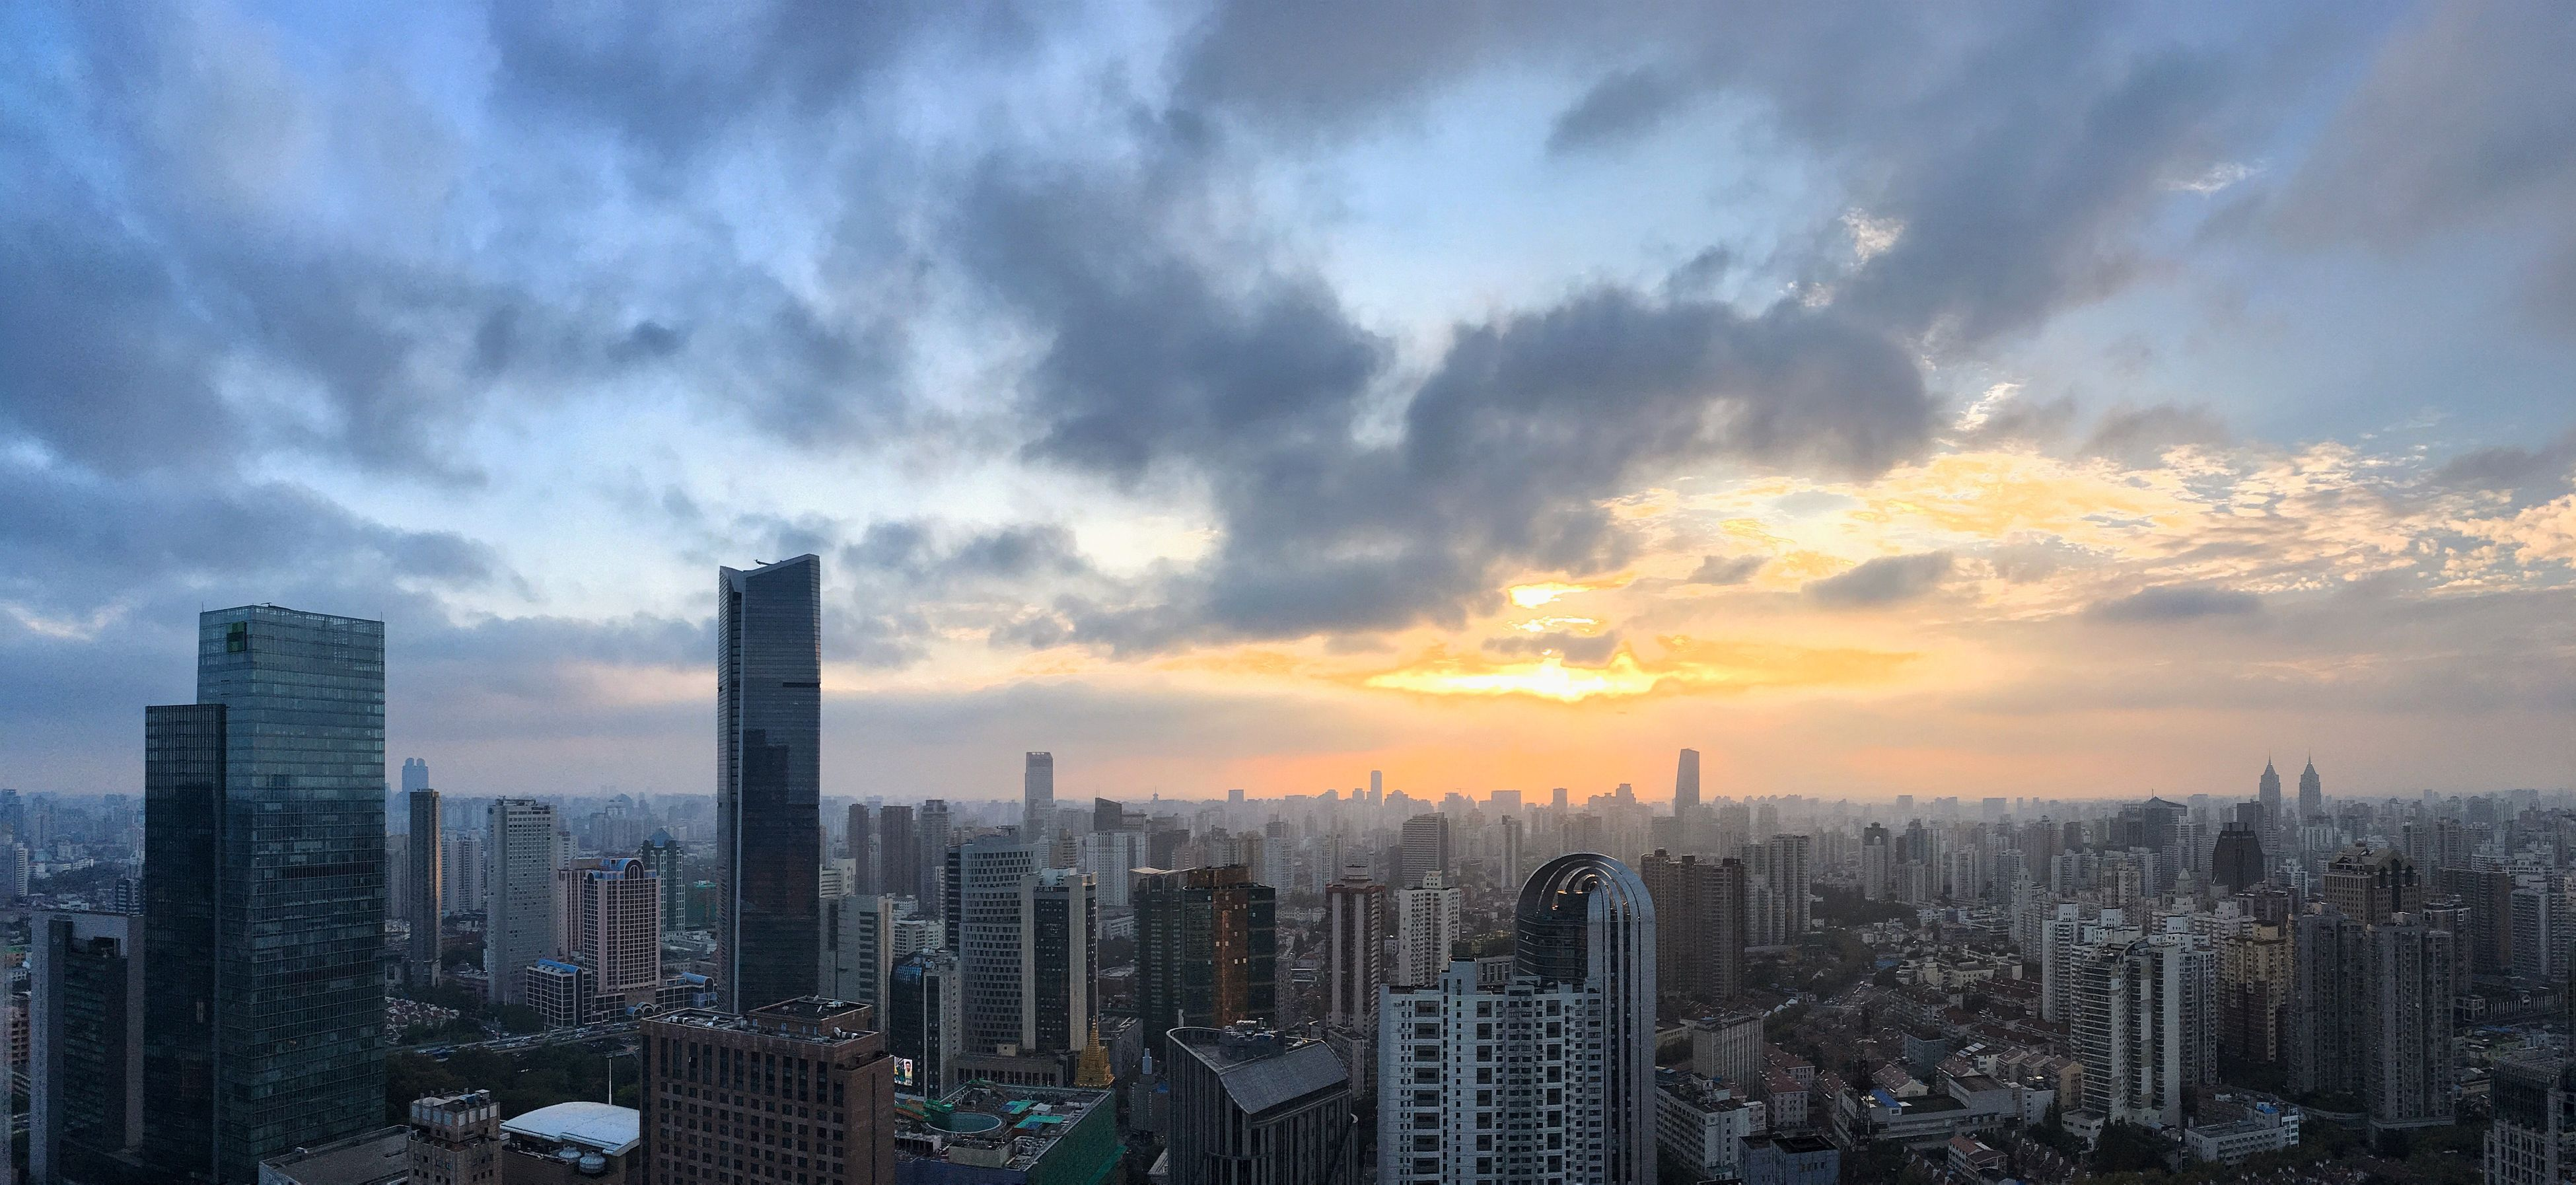 city, cityscape, building exterior, skyscraper, architecture, built structure, sky, sunset, cloud - sky, tall - high, modern, tower, crowded, office building, urban skyline, city life, financial district, cloud, high angle view, cloudy